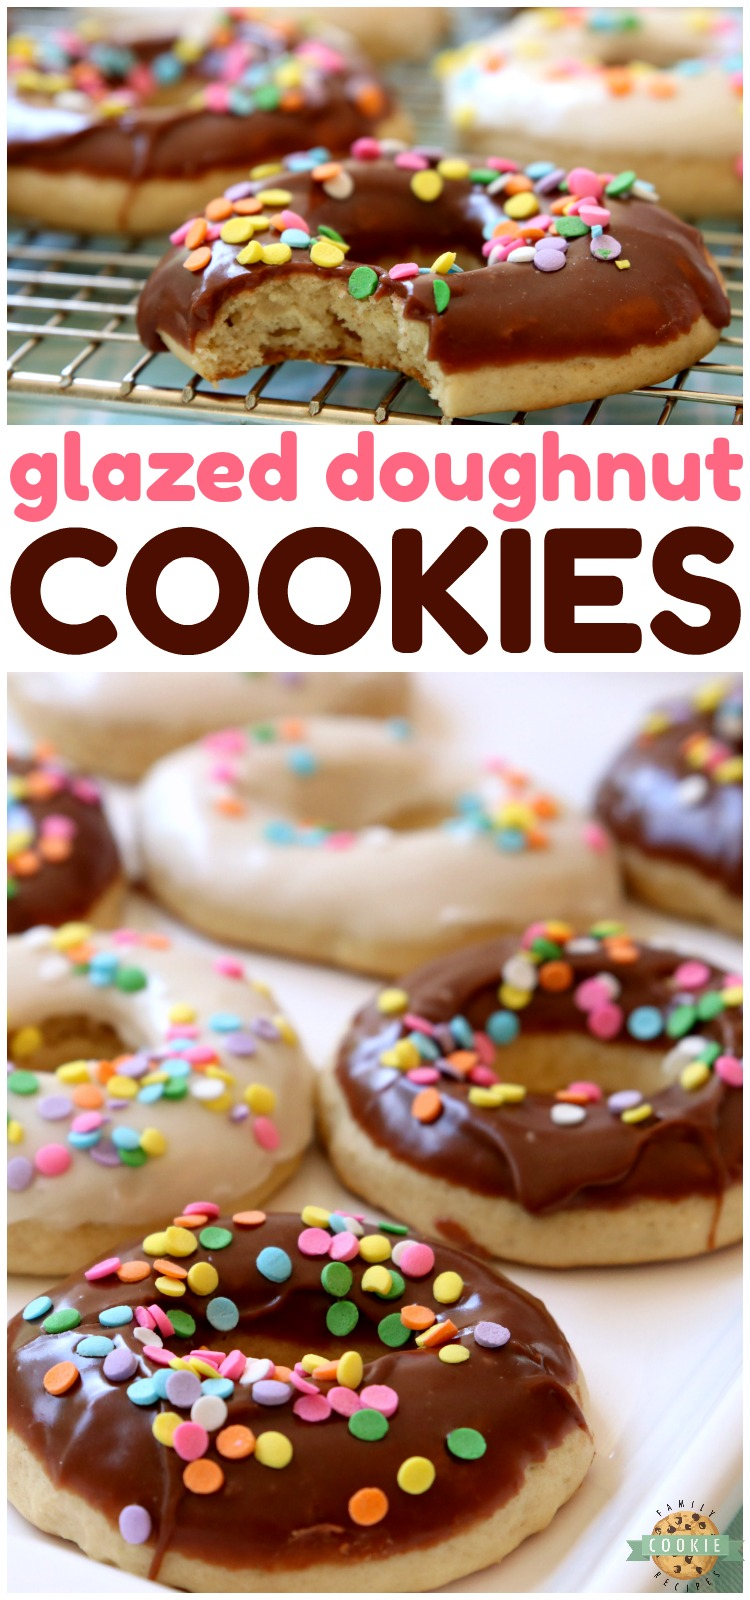 Glazed Donut Cookies are soft & pillowy donut-shaped cookies with a lovely chocolate or vanilla glaze & topped with sprinkles! Everything you love about donuts, only in cookie form! #cookies #donuts #baking #dessert #recipe #cookie from FAMILY COOKIE RECIPES